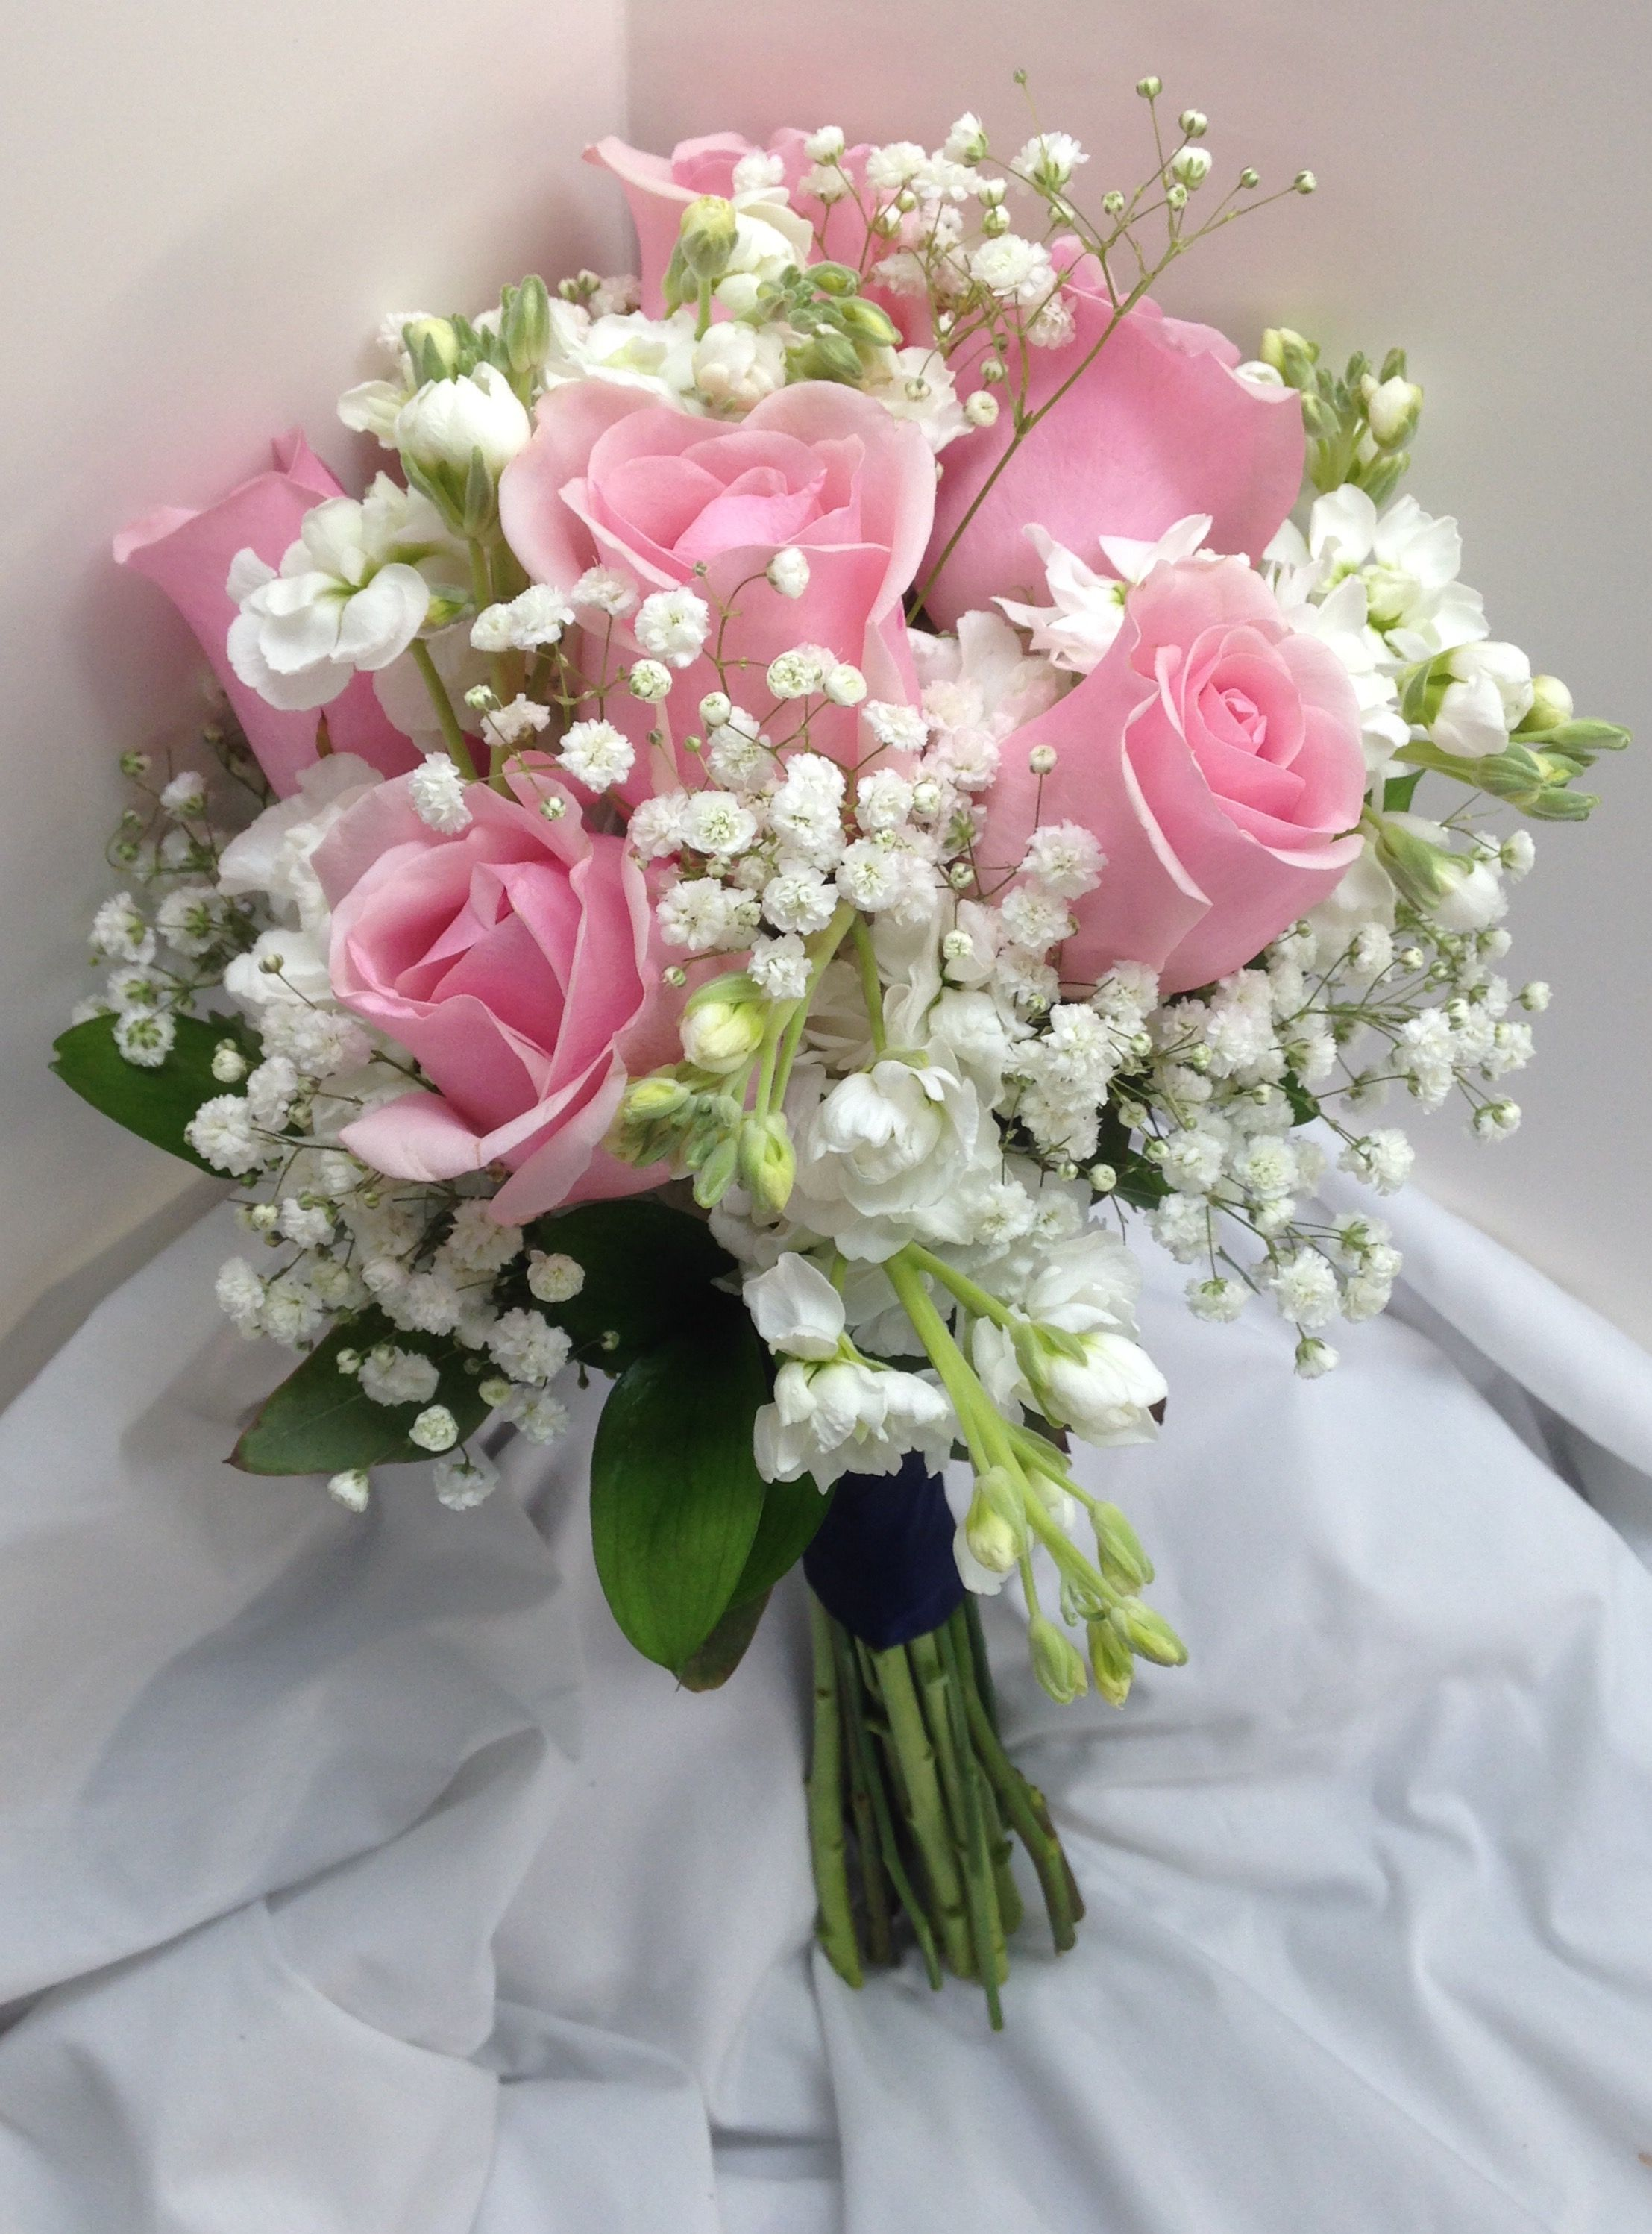 Bridal Bouquet With Pink Roses White Mini Carnations And Baby S Breath Wedding Bouquets Pink Flower Bouquet Wedding Prom Flowers Bouquet